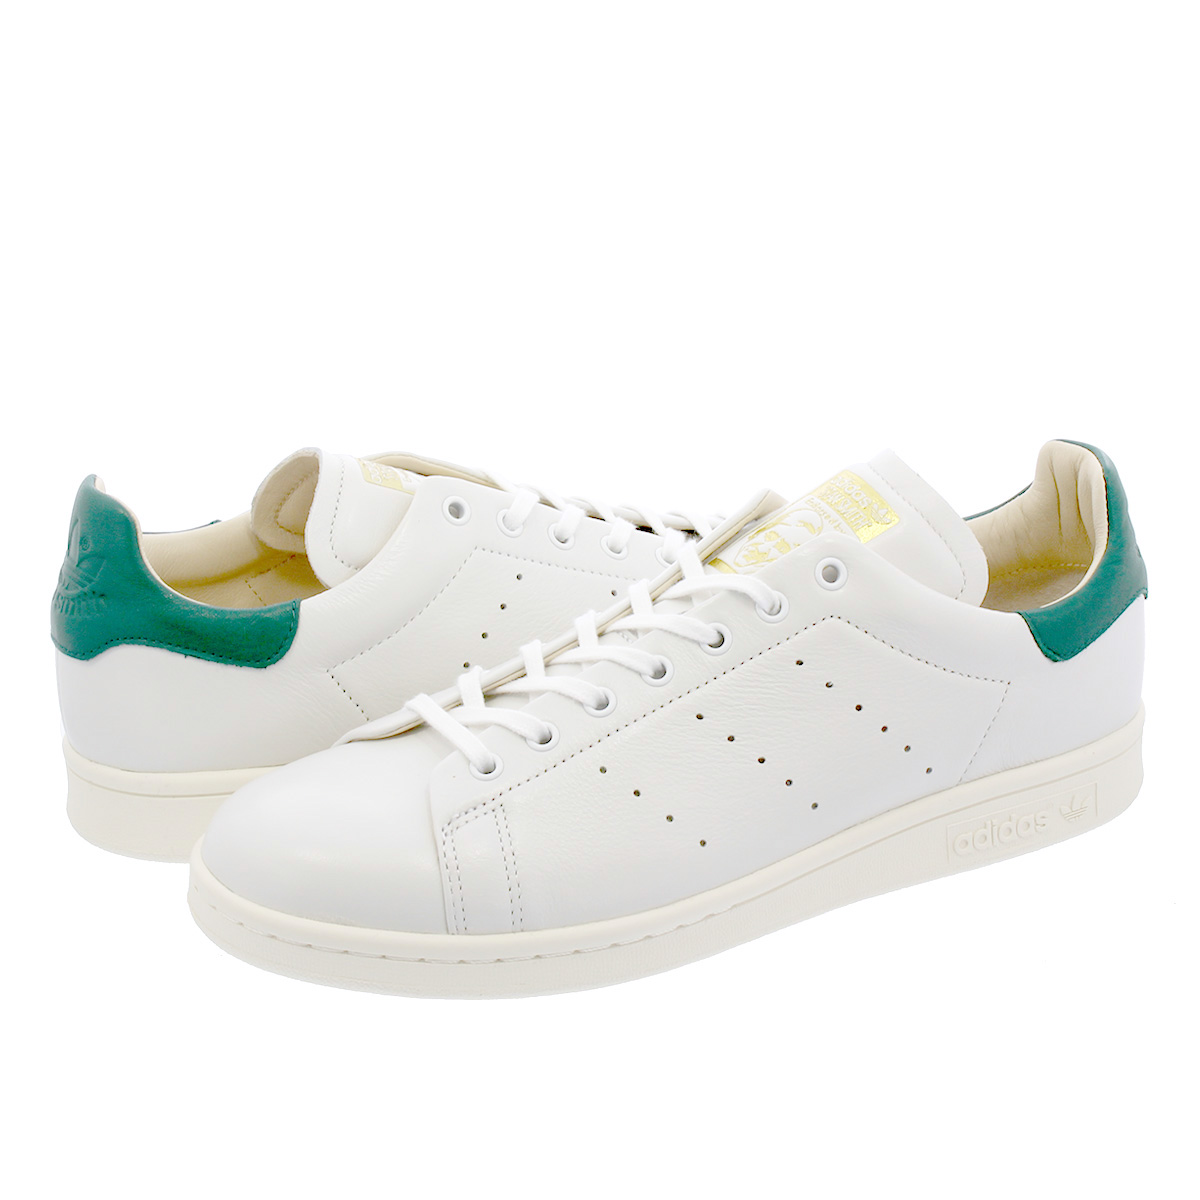 adidas STAN SMITH RECON アディダススタンスミスリーコン RUNNING WHITE/NOBLE GREEN aq0868